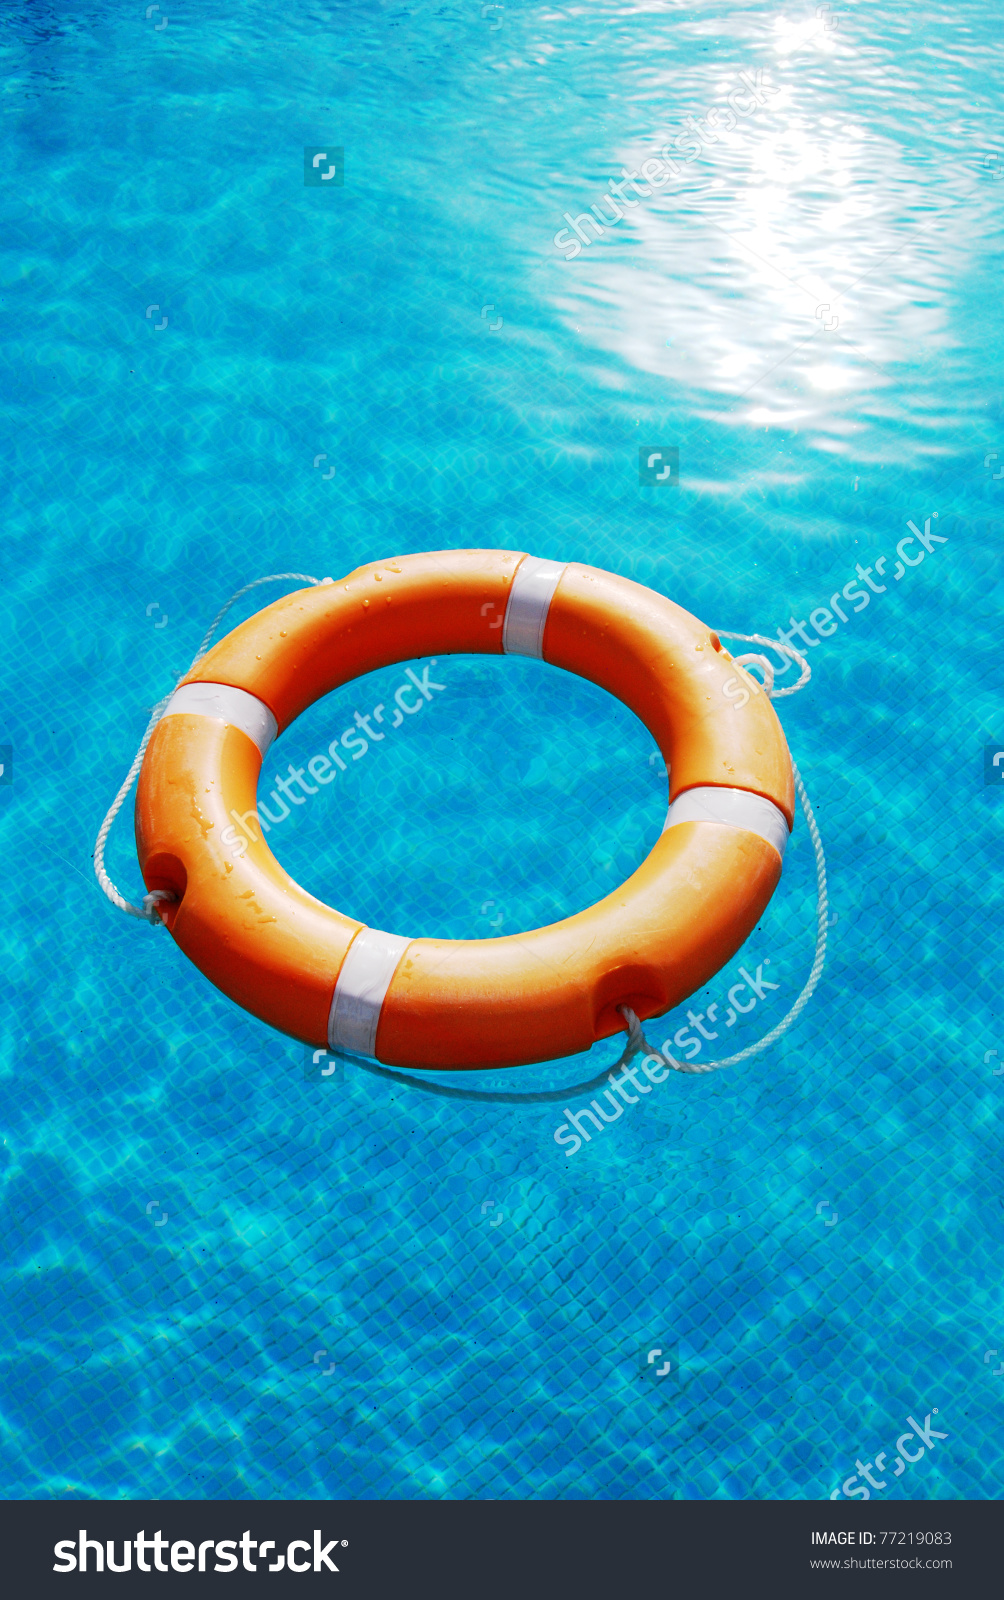 Floating Tire Stock Photo 77219083 : Shutterstock.